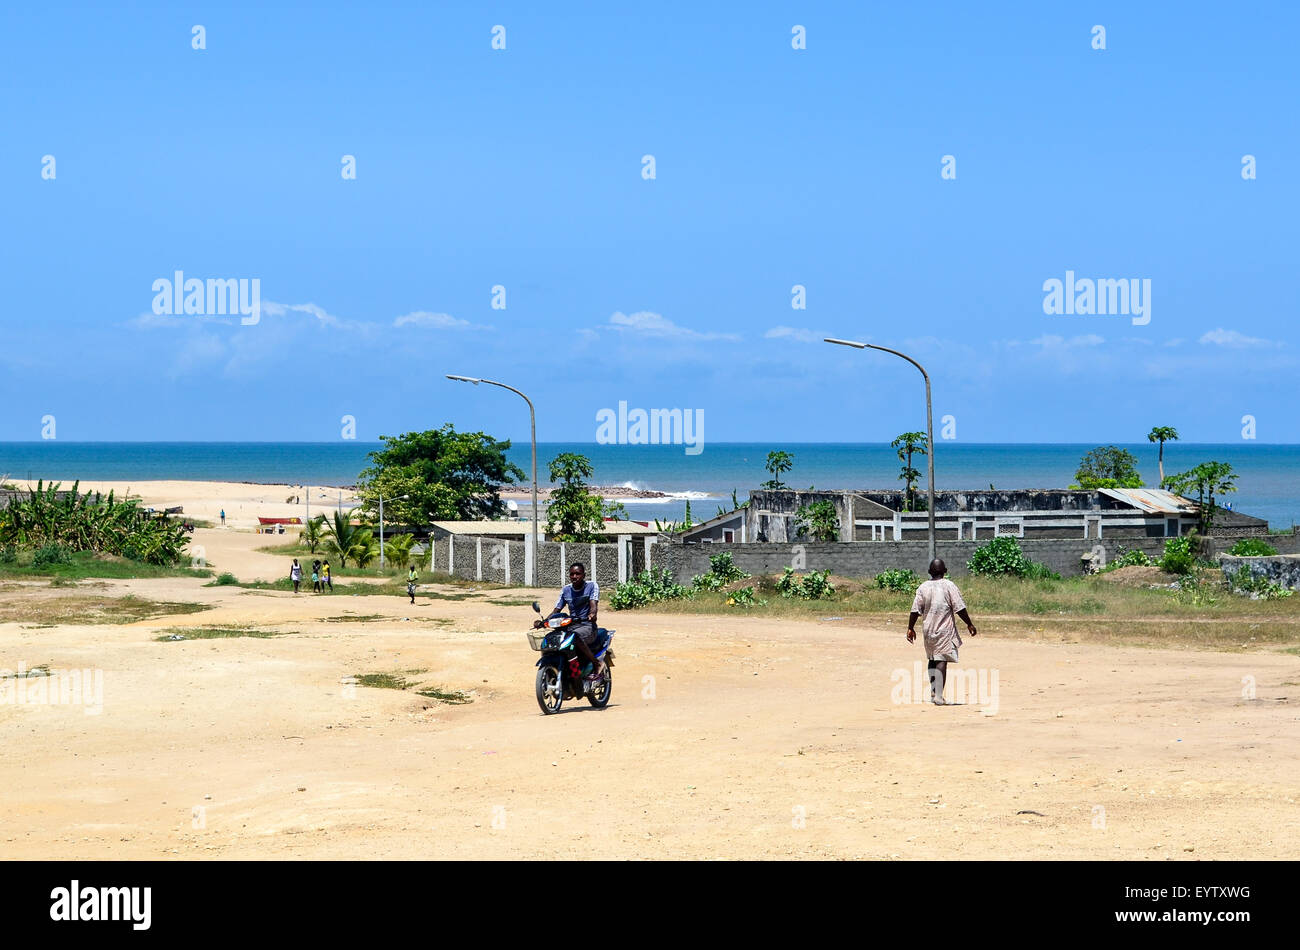 Town of N'zeto in Angola and the Atlantic ocean - Stock Image